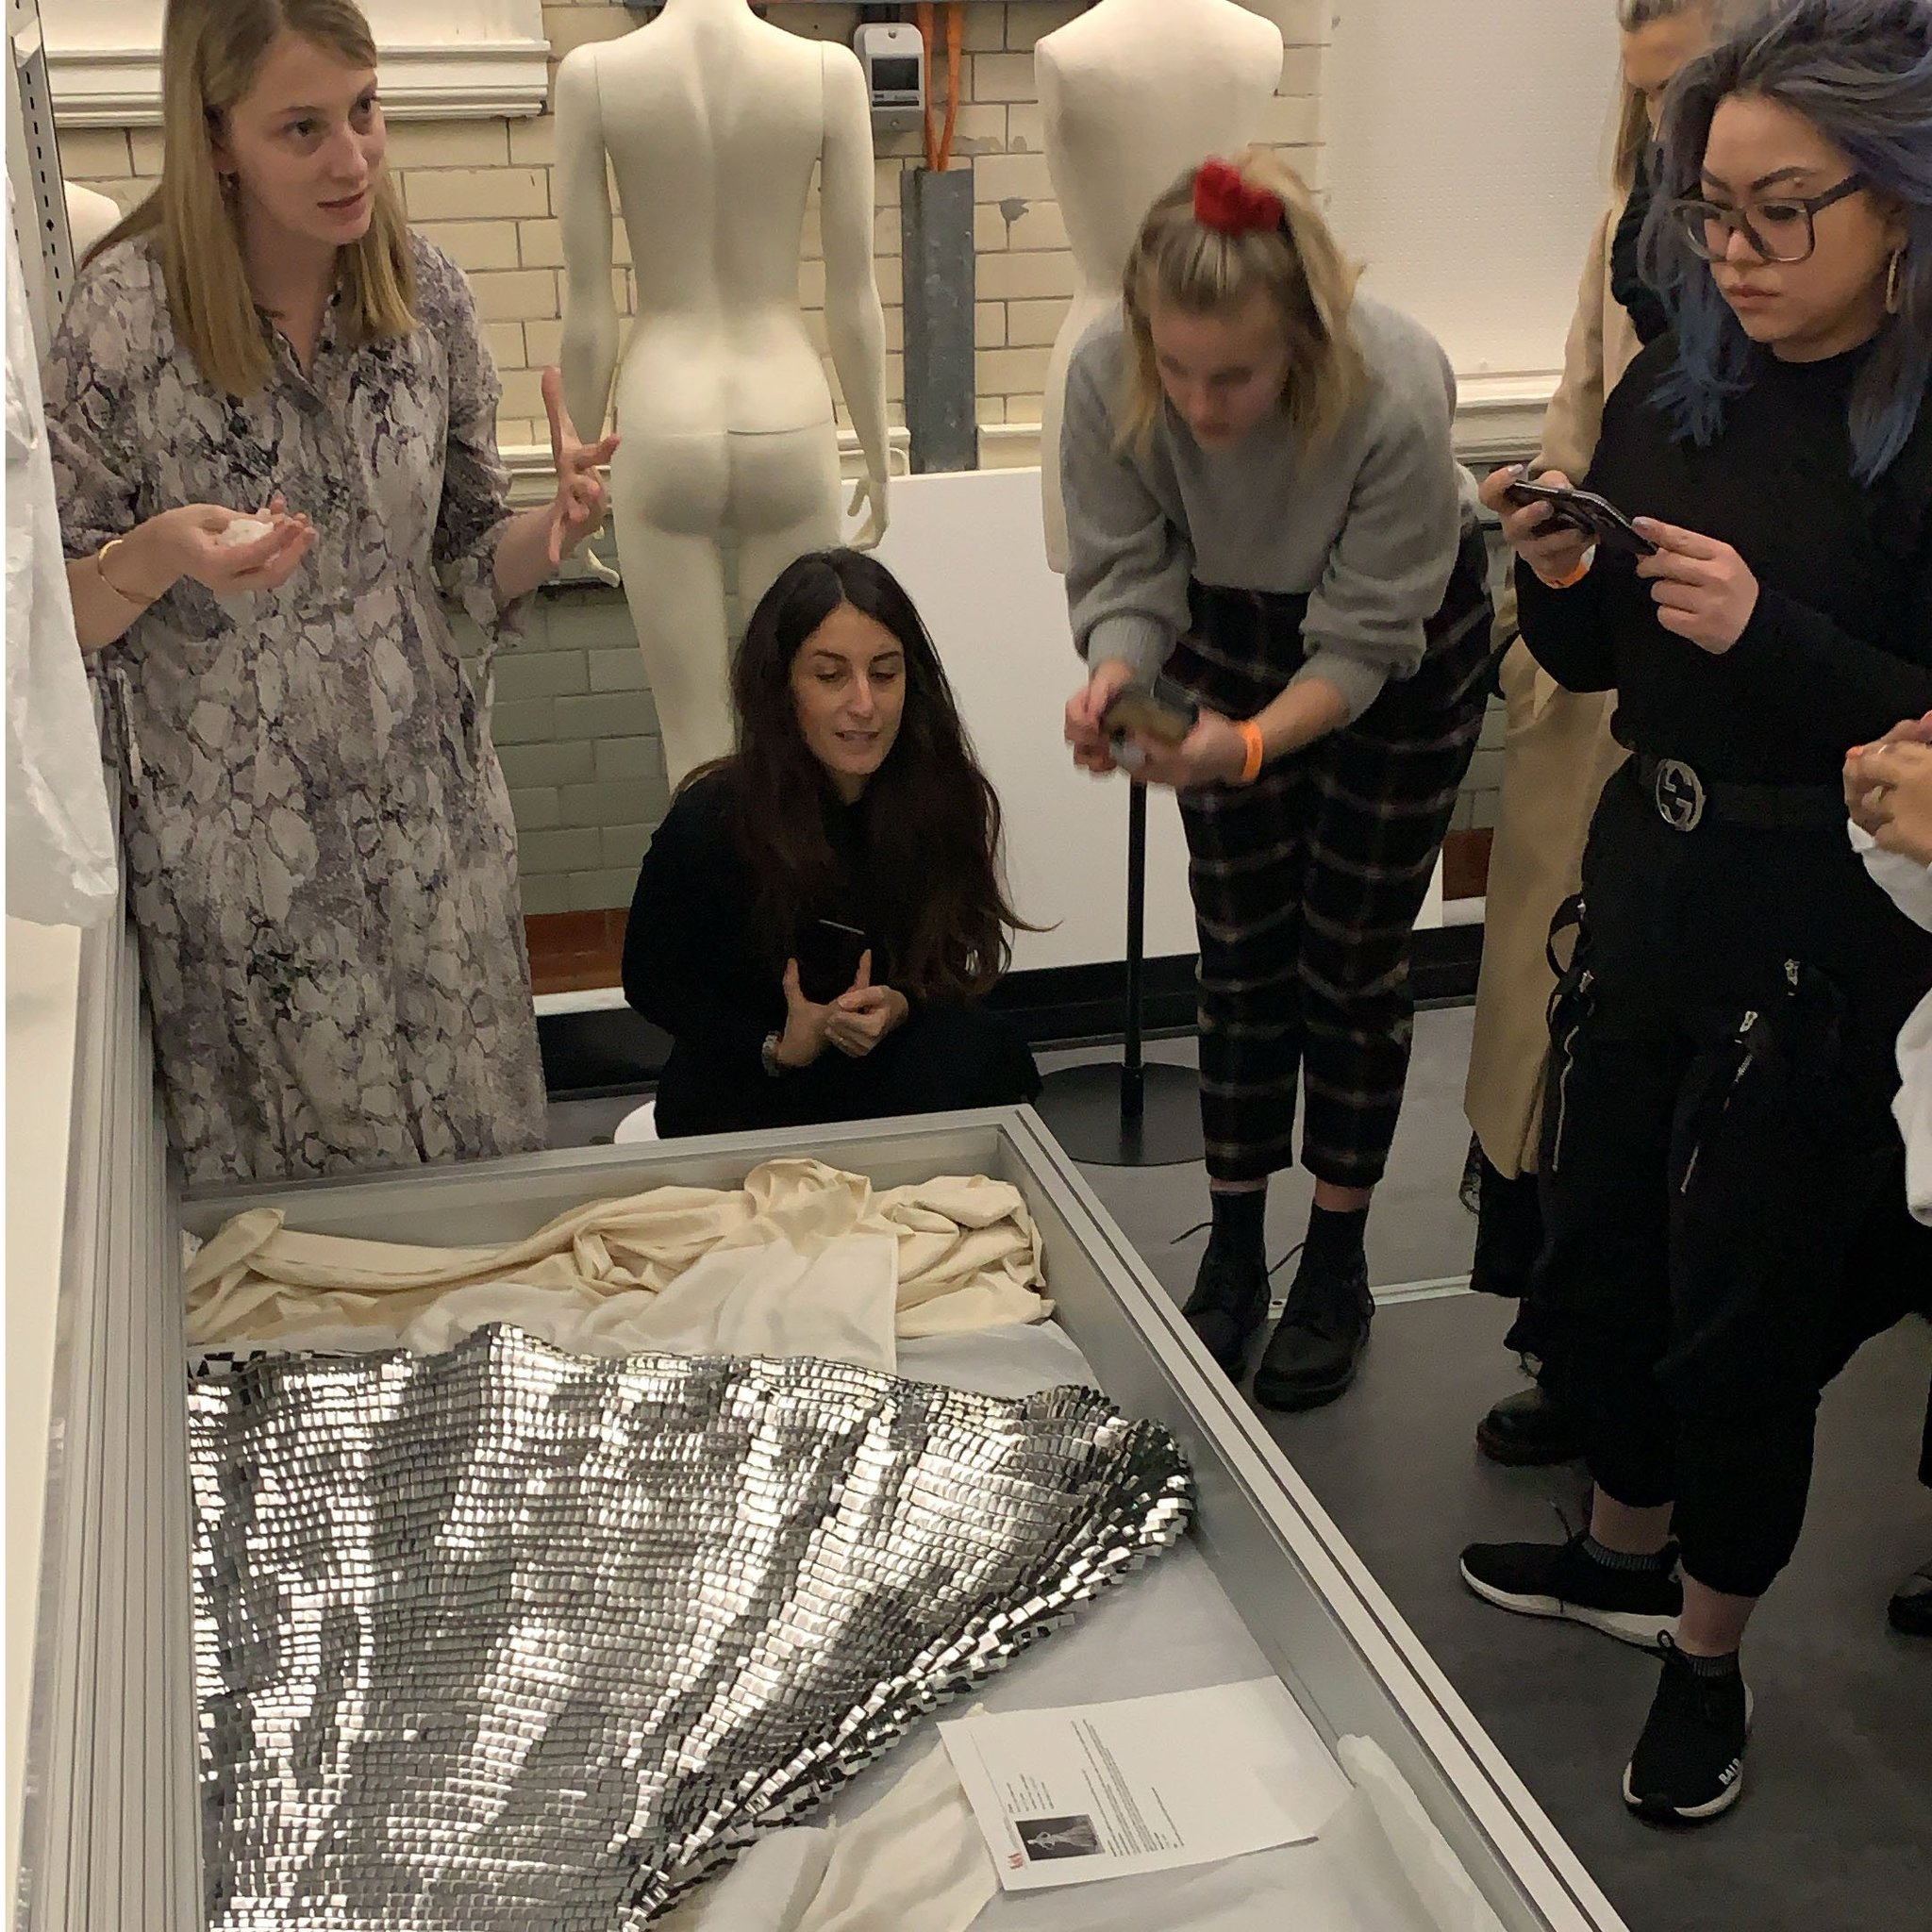 Conde Nast College On Twitter Our Ma Students Digging Into Fashion History With A Talk On The Golden Age Of Couture Given By Curator Elisabeth Murray At The Clothworkers Centre V A